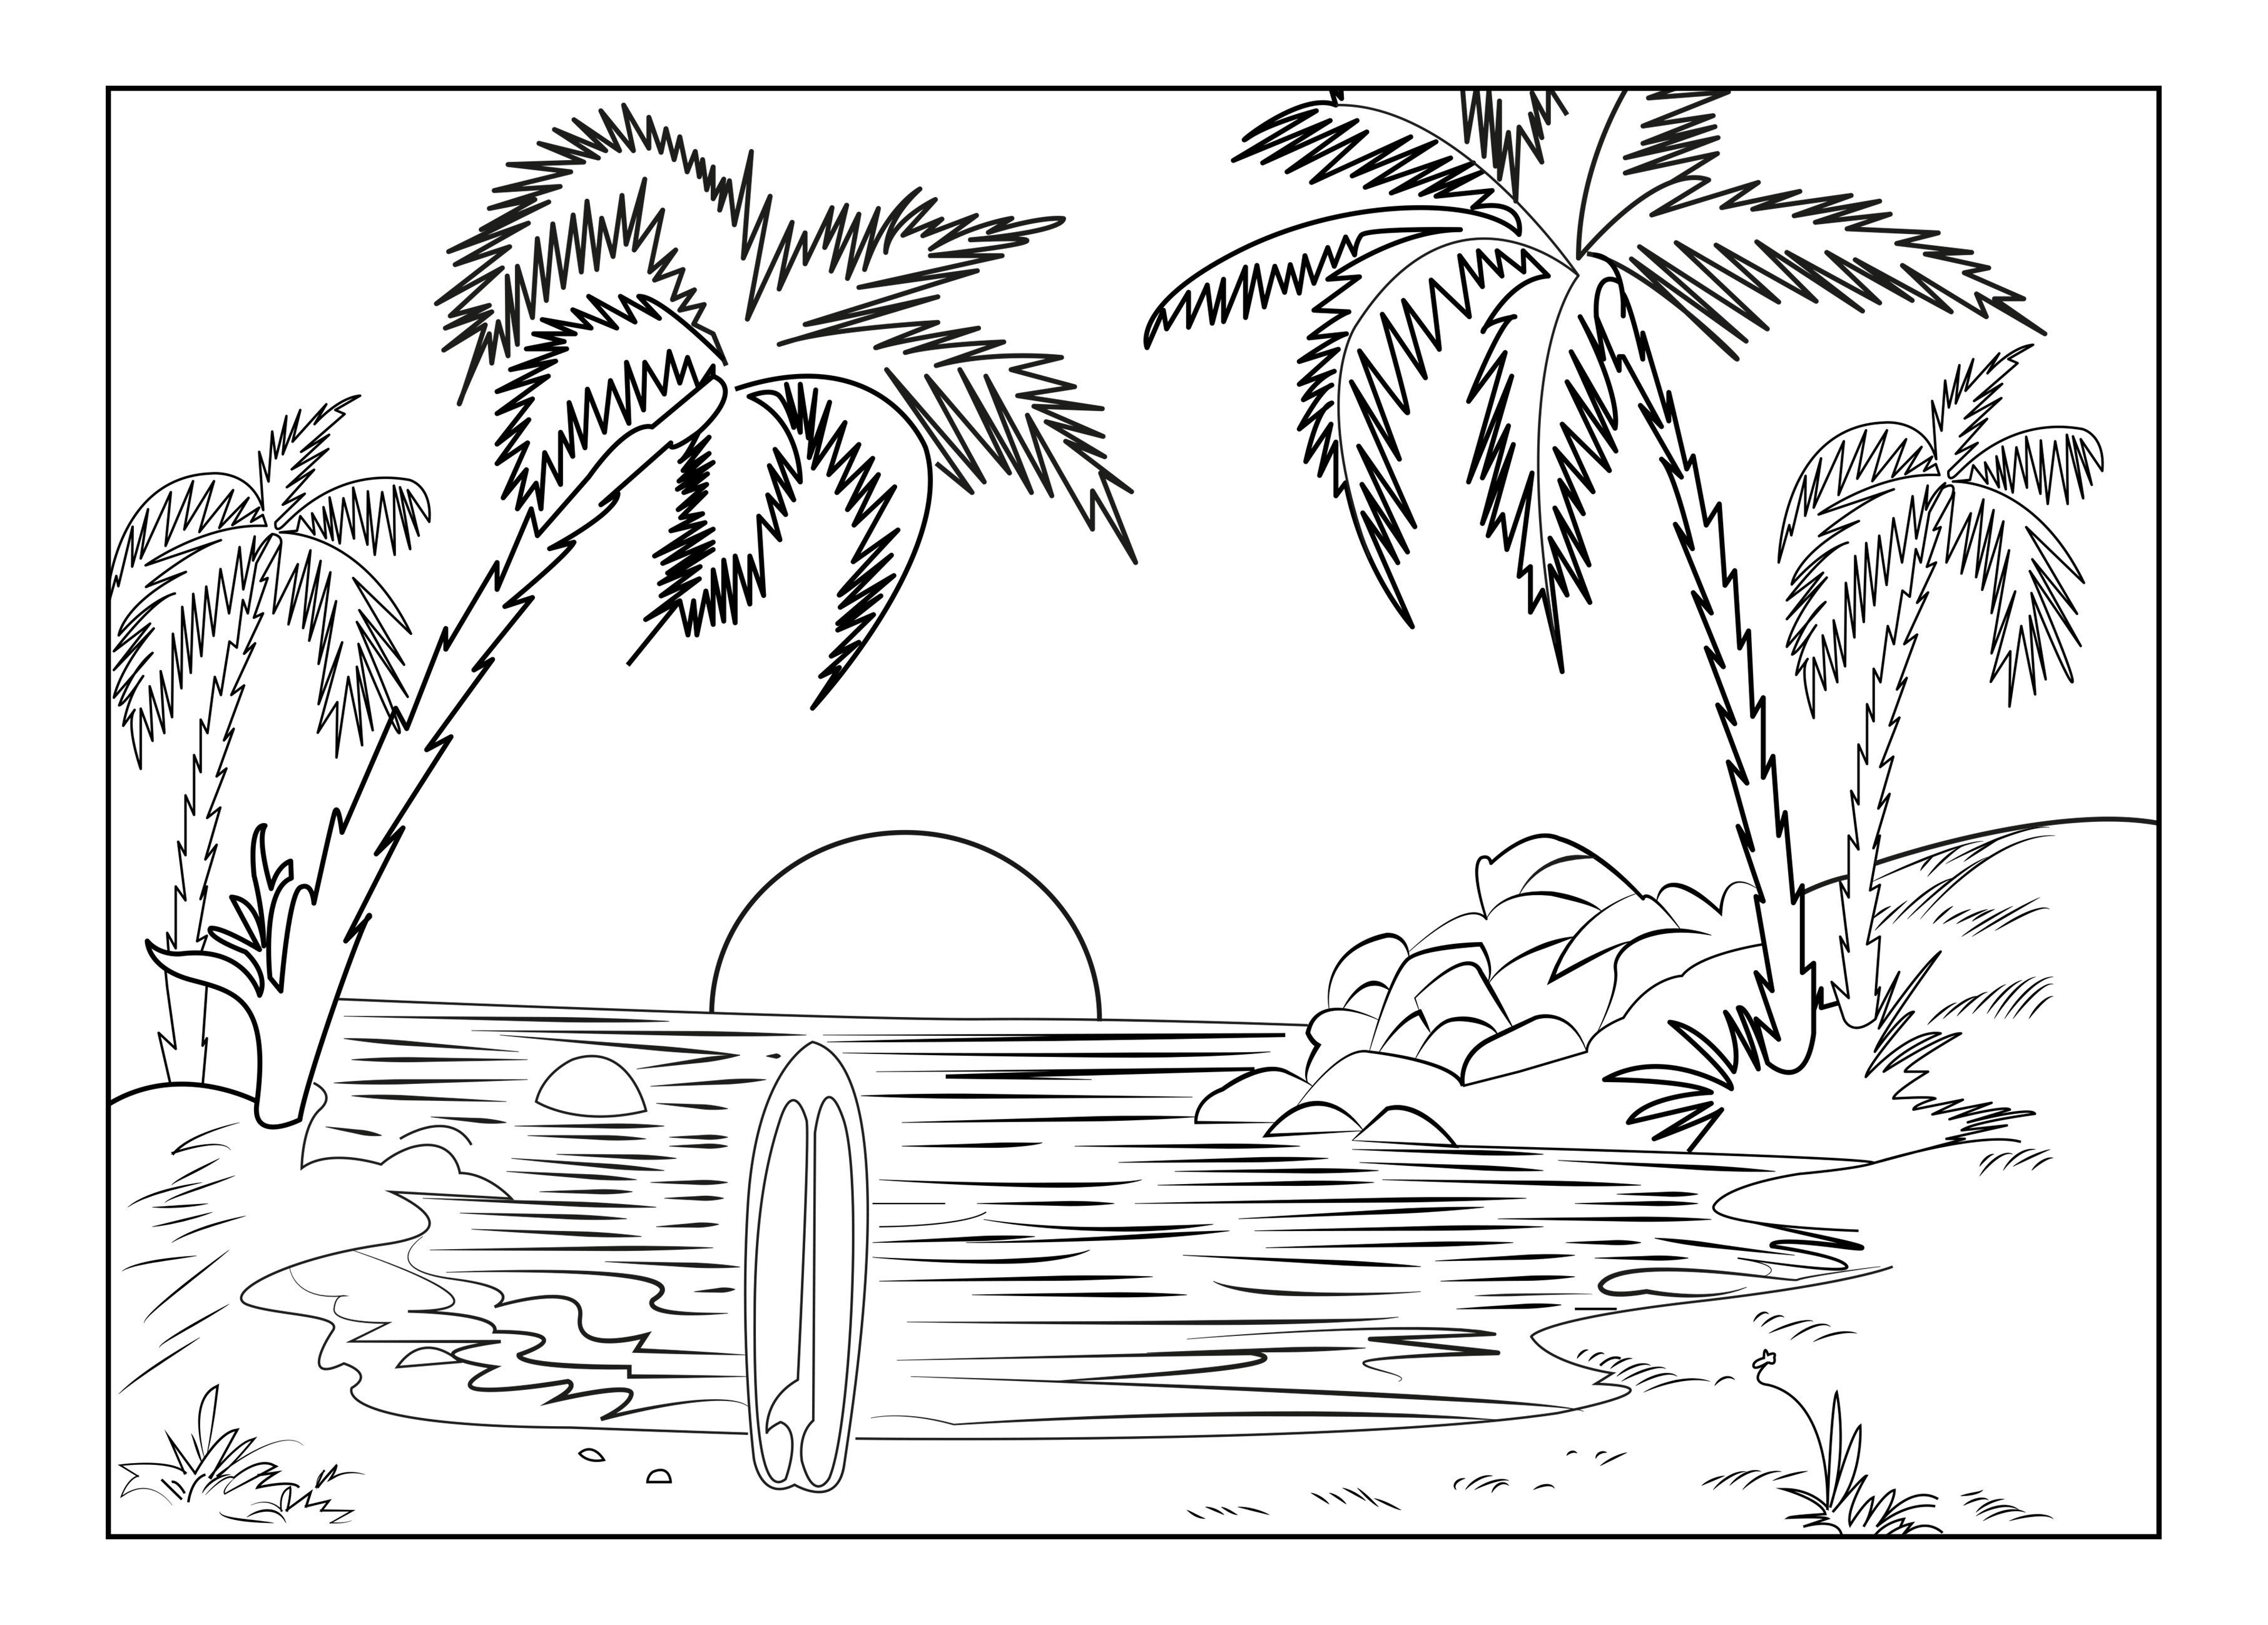 A Beautiful Landscape For The Summer Made By Celinefrom The Gallery Landscapesartist Celin Coloring Pages Nature Beach Coloring Pages Summer Coloring Pages